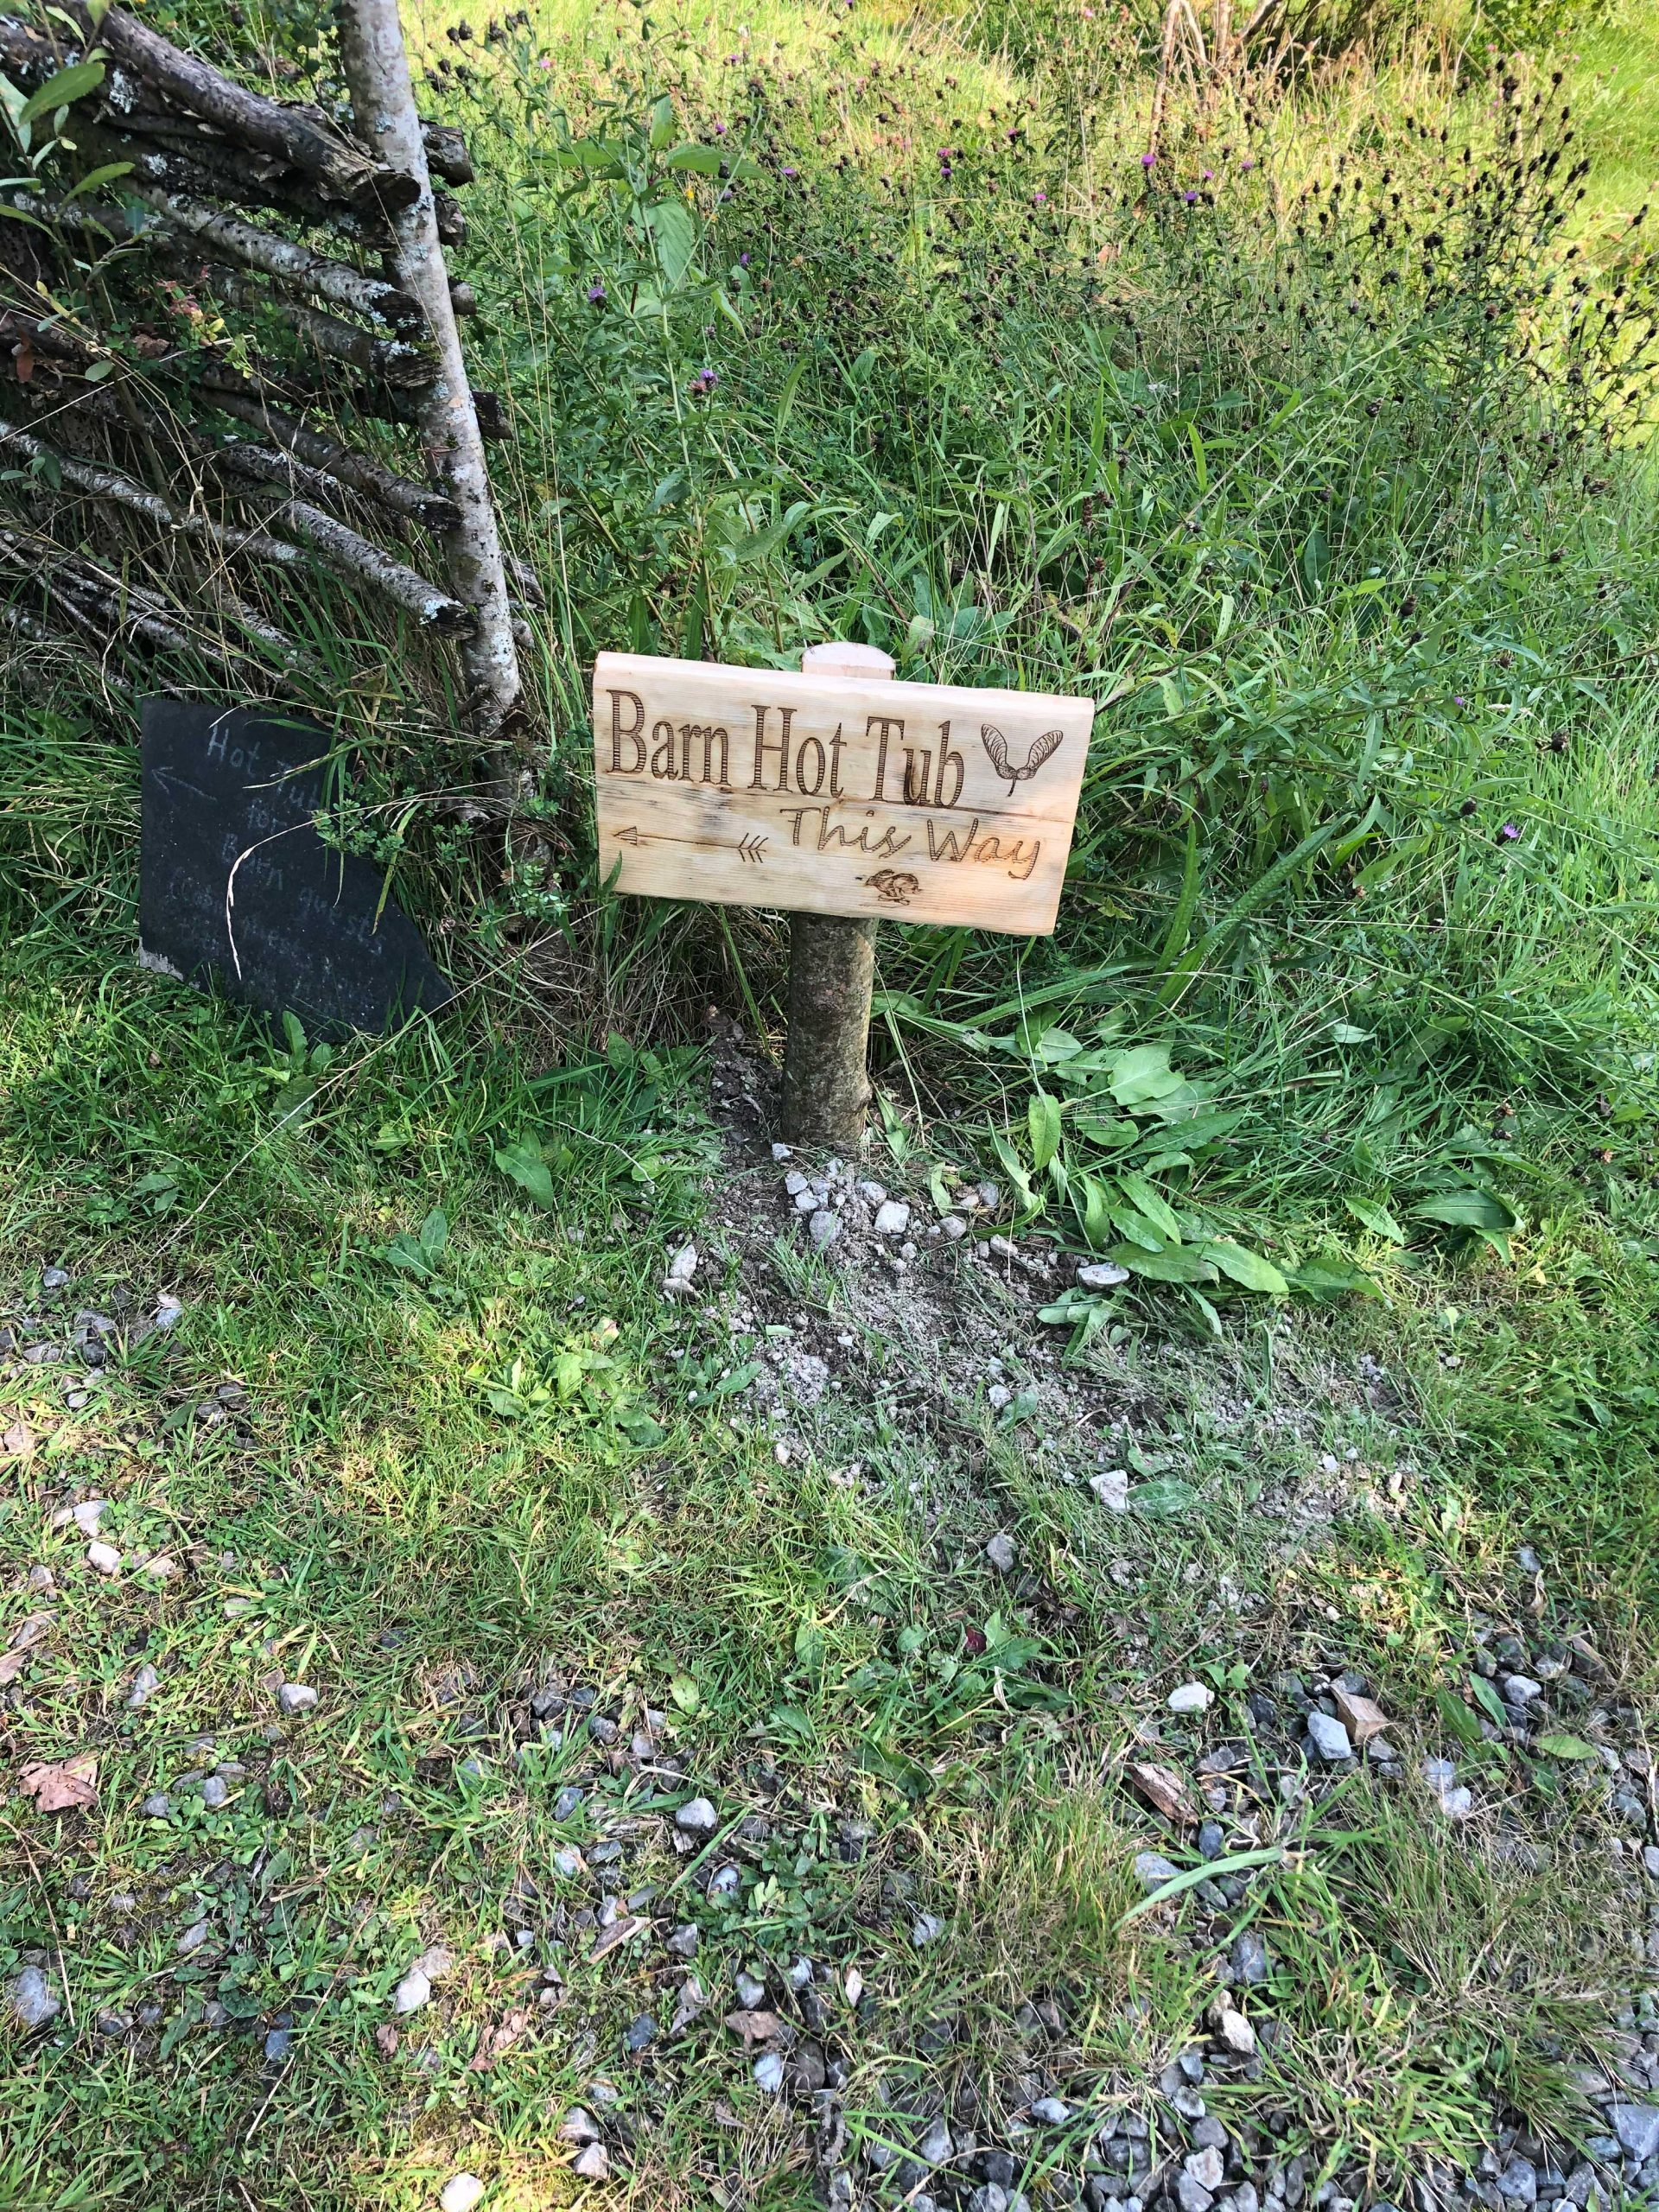 Rustic wooden sign in woods reads Barn Hot Tub This Way